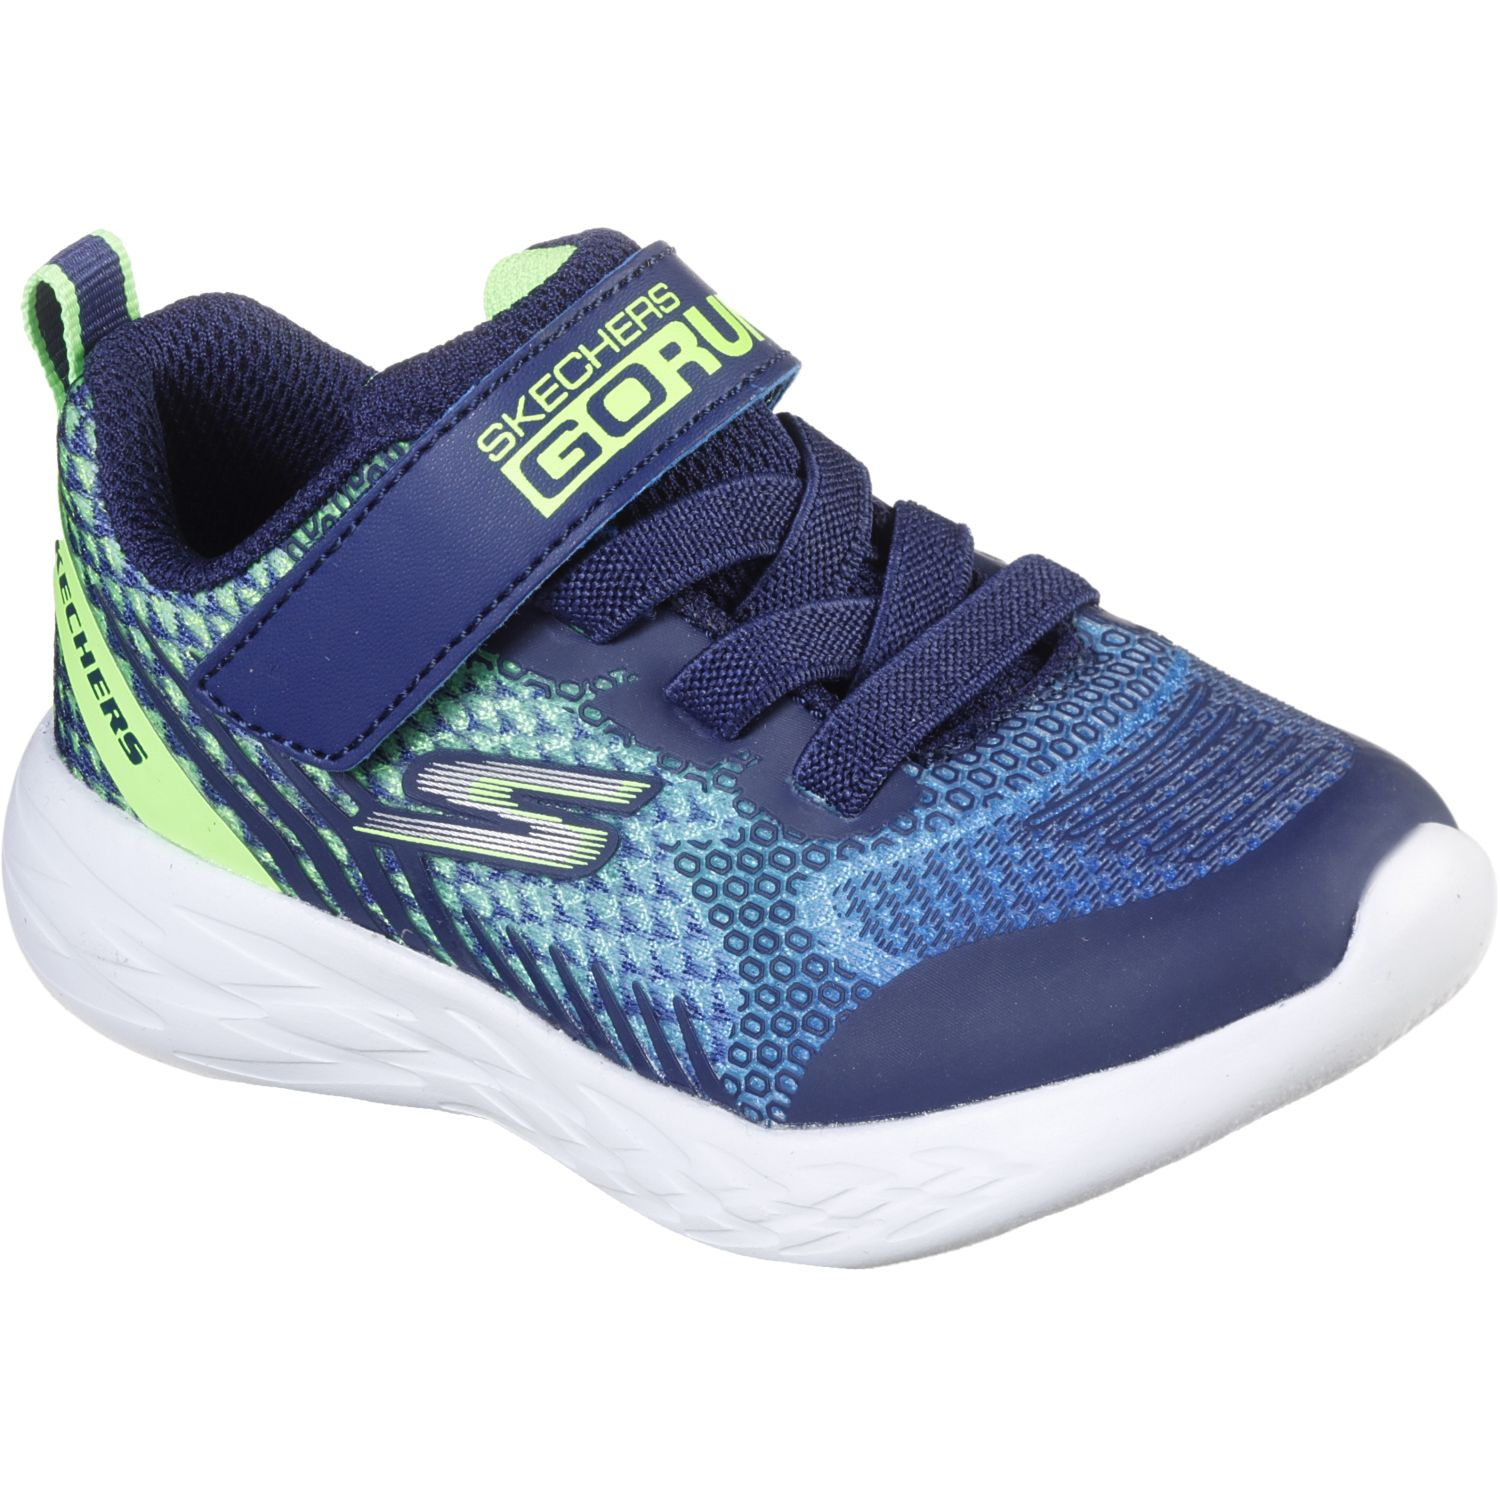 Skechers GO RUN 600 Navy Walking